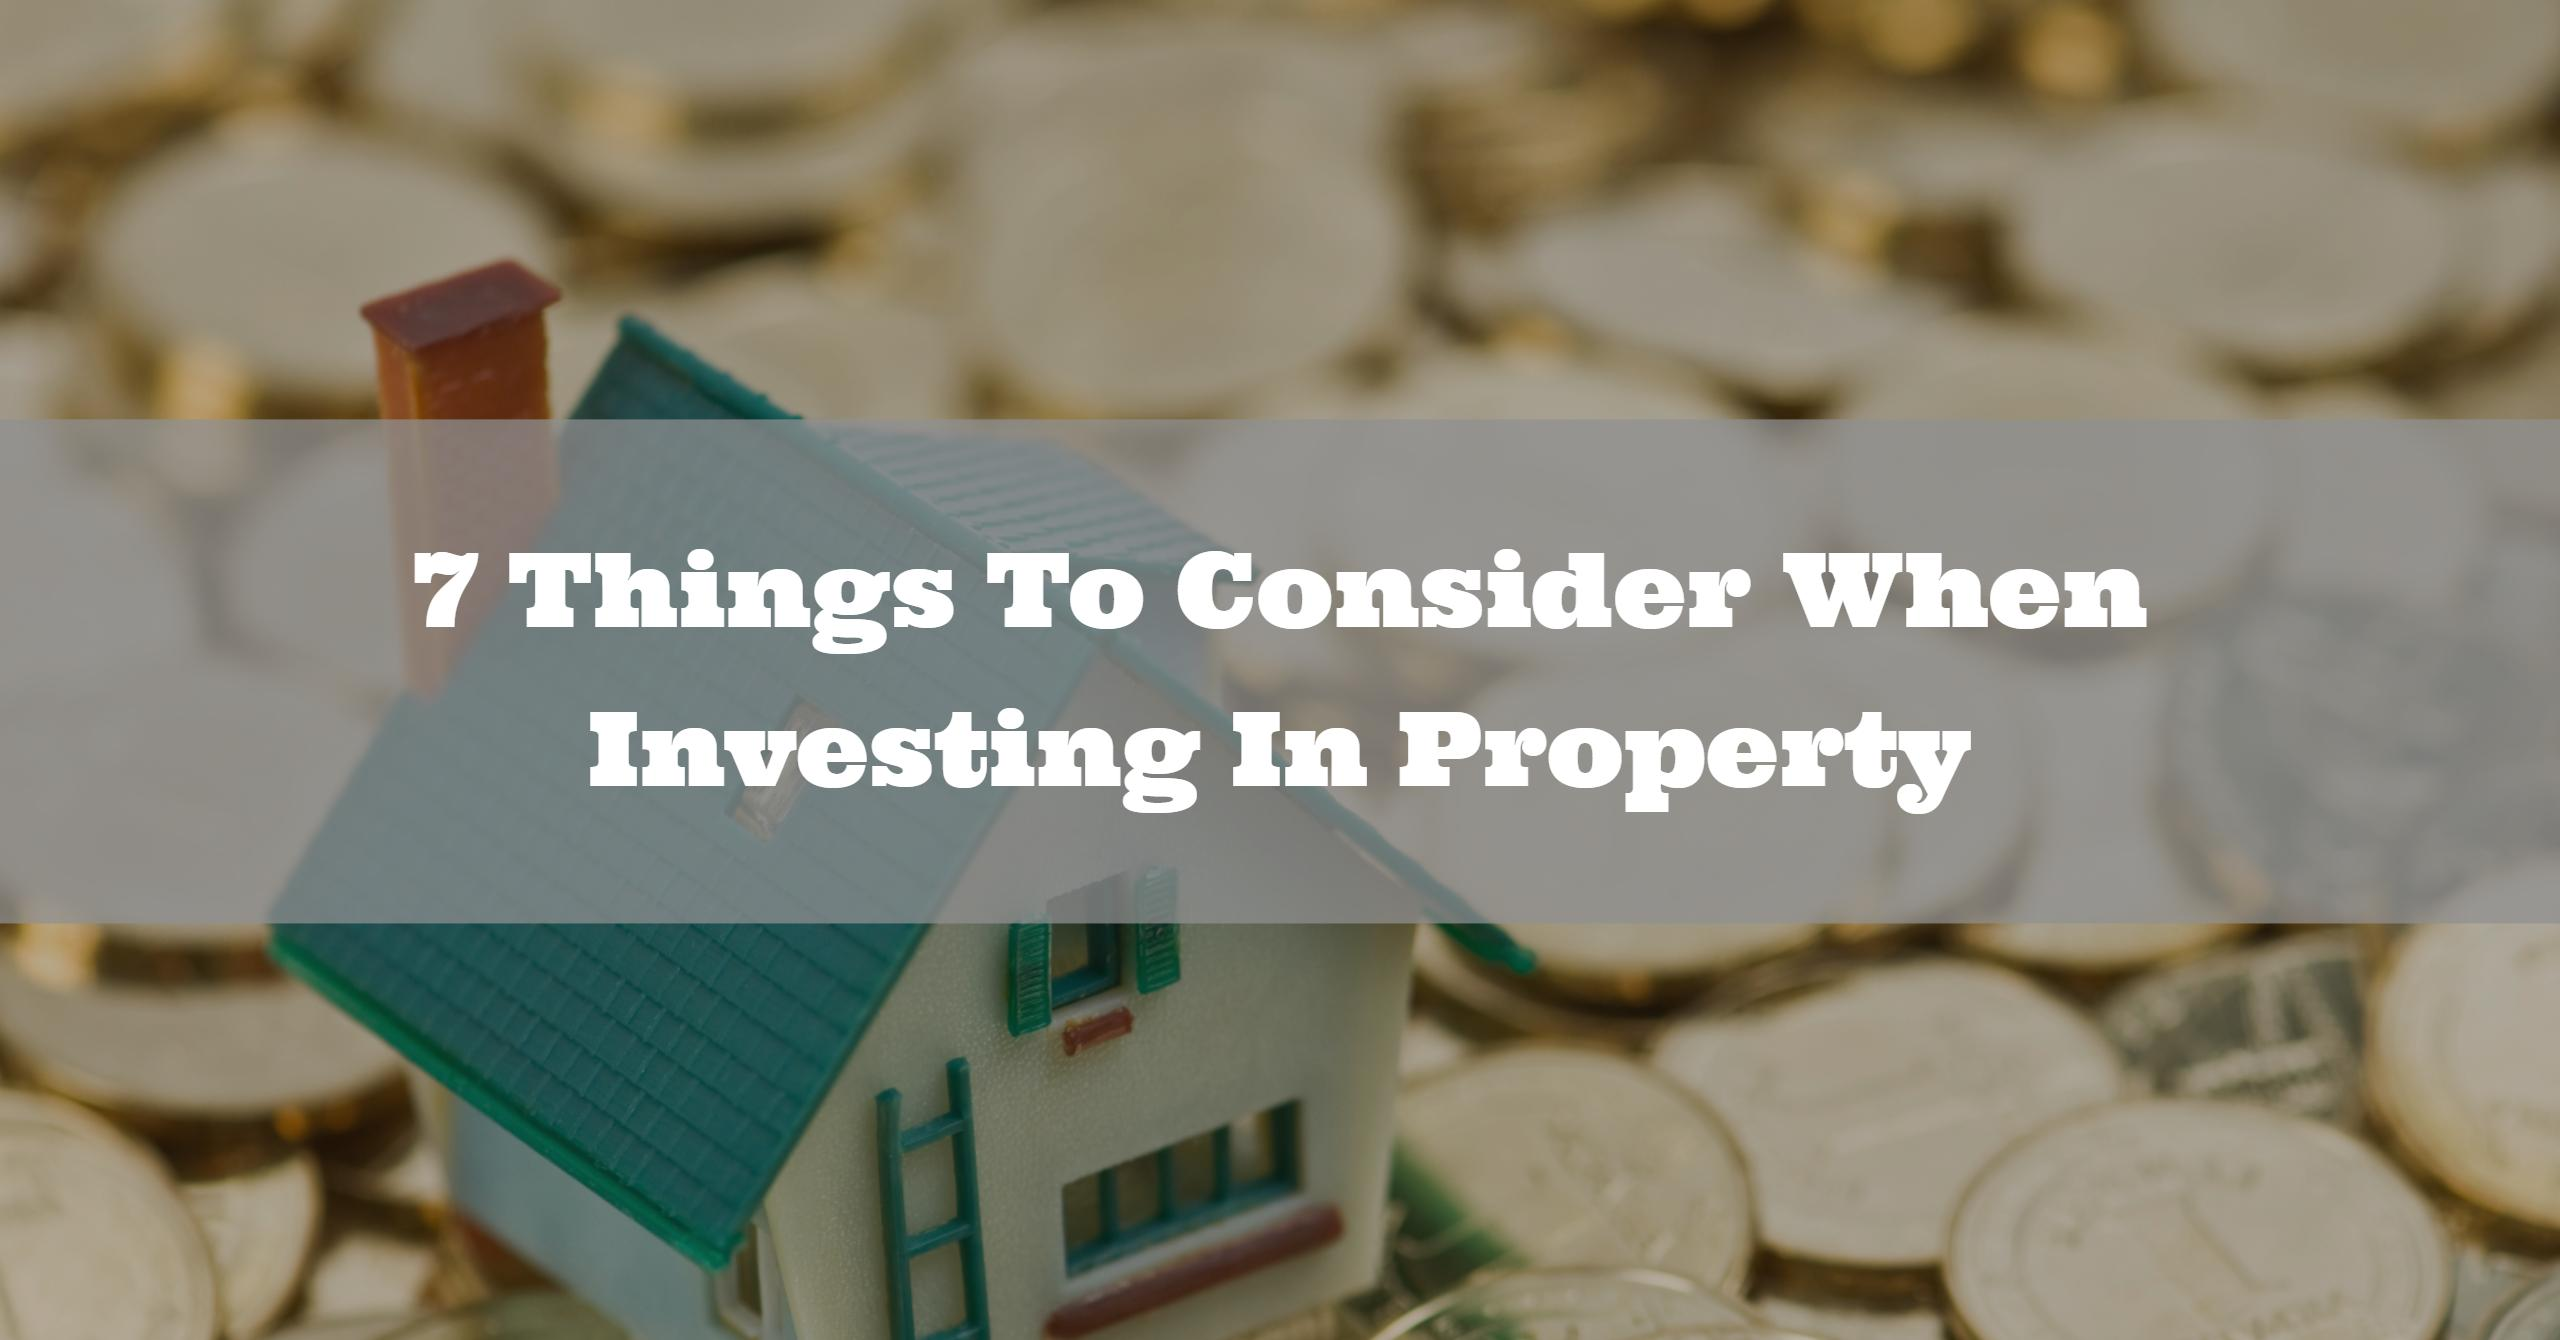 7-things-to-consider-when-Investing-in-property-in-Australia